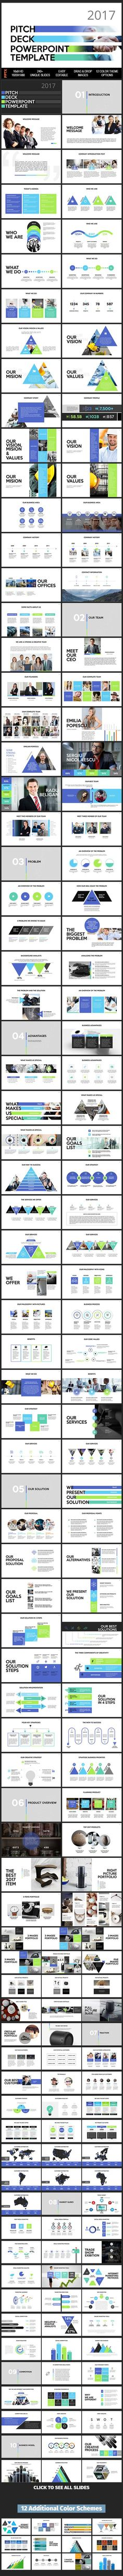 2017 PITCH DECK Powerpoint Presentation Template (PowerPoint Templates)